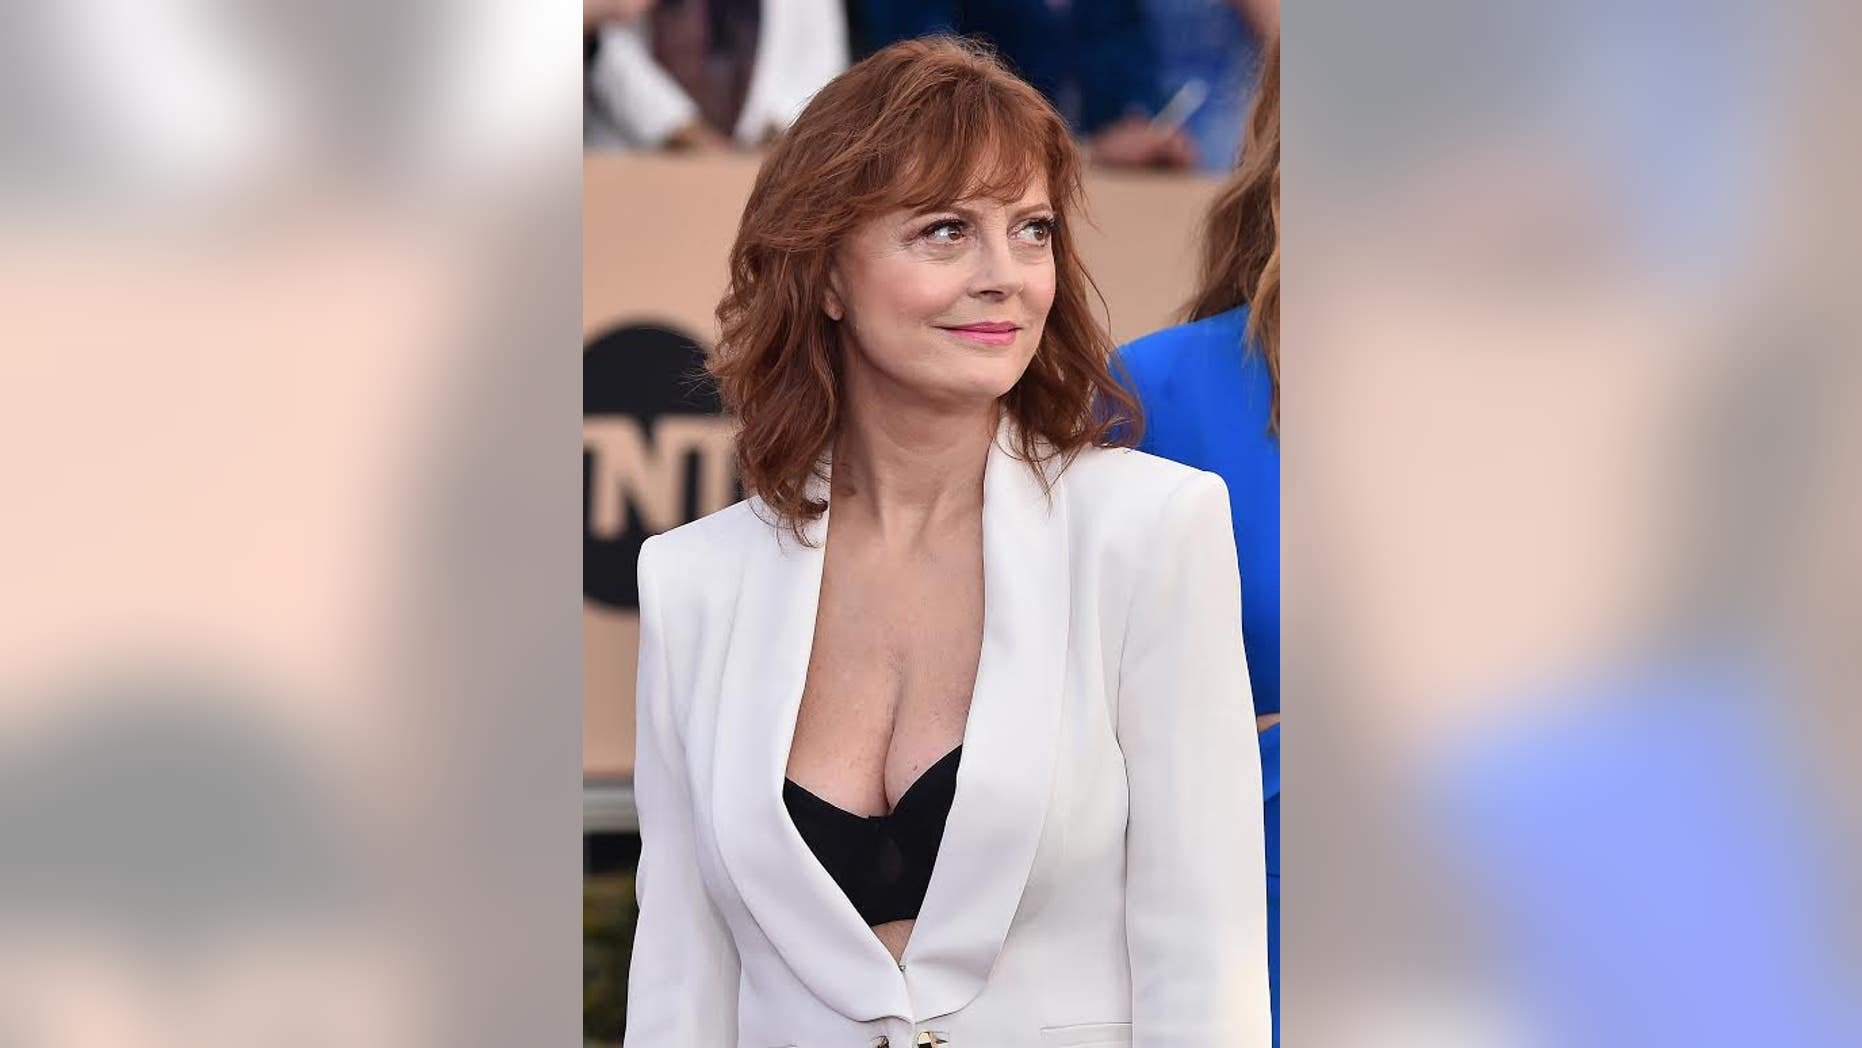 January 30, 2016. Susan Sarandon at the SAG Awards.